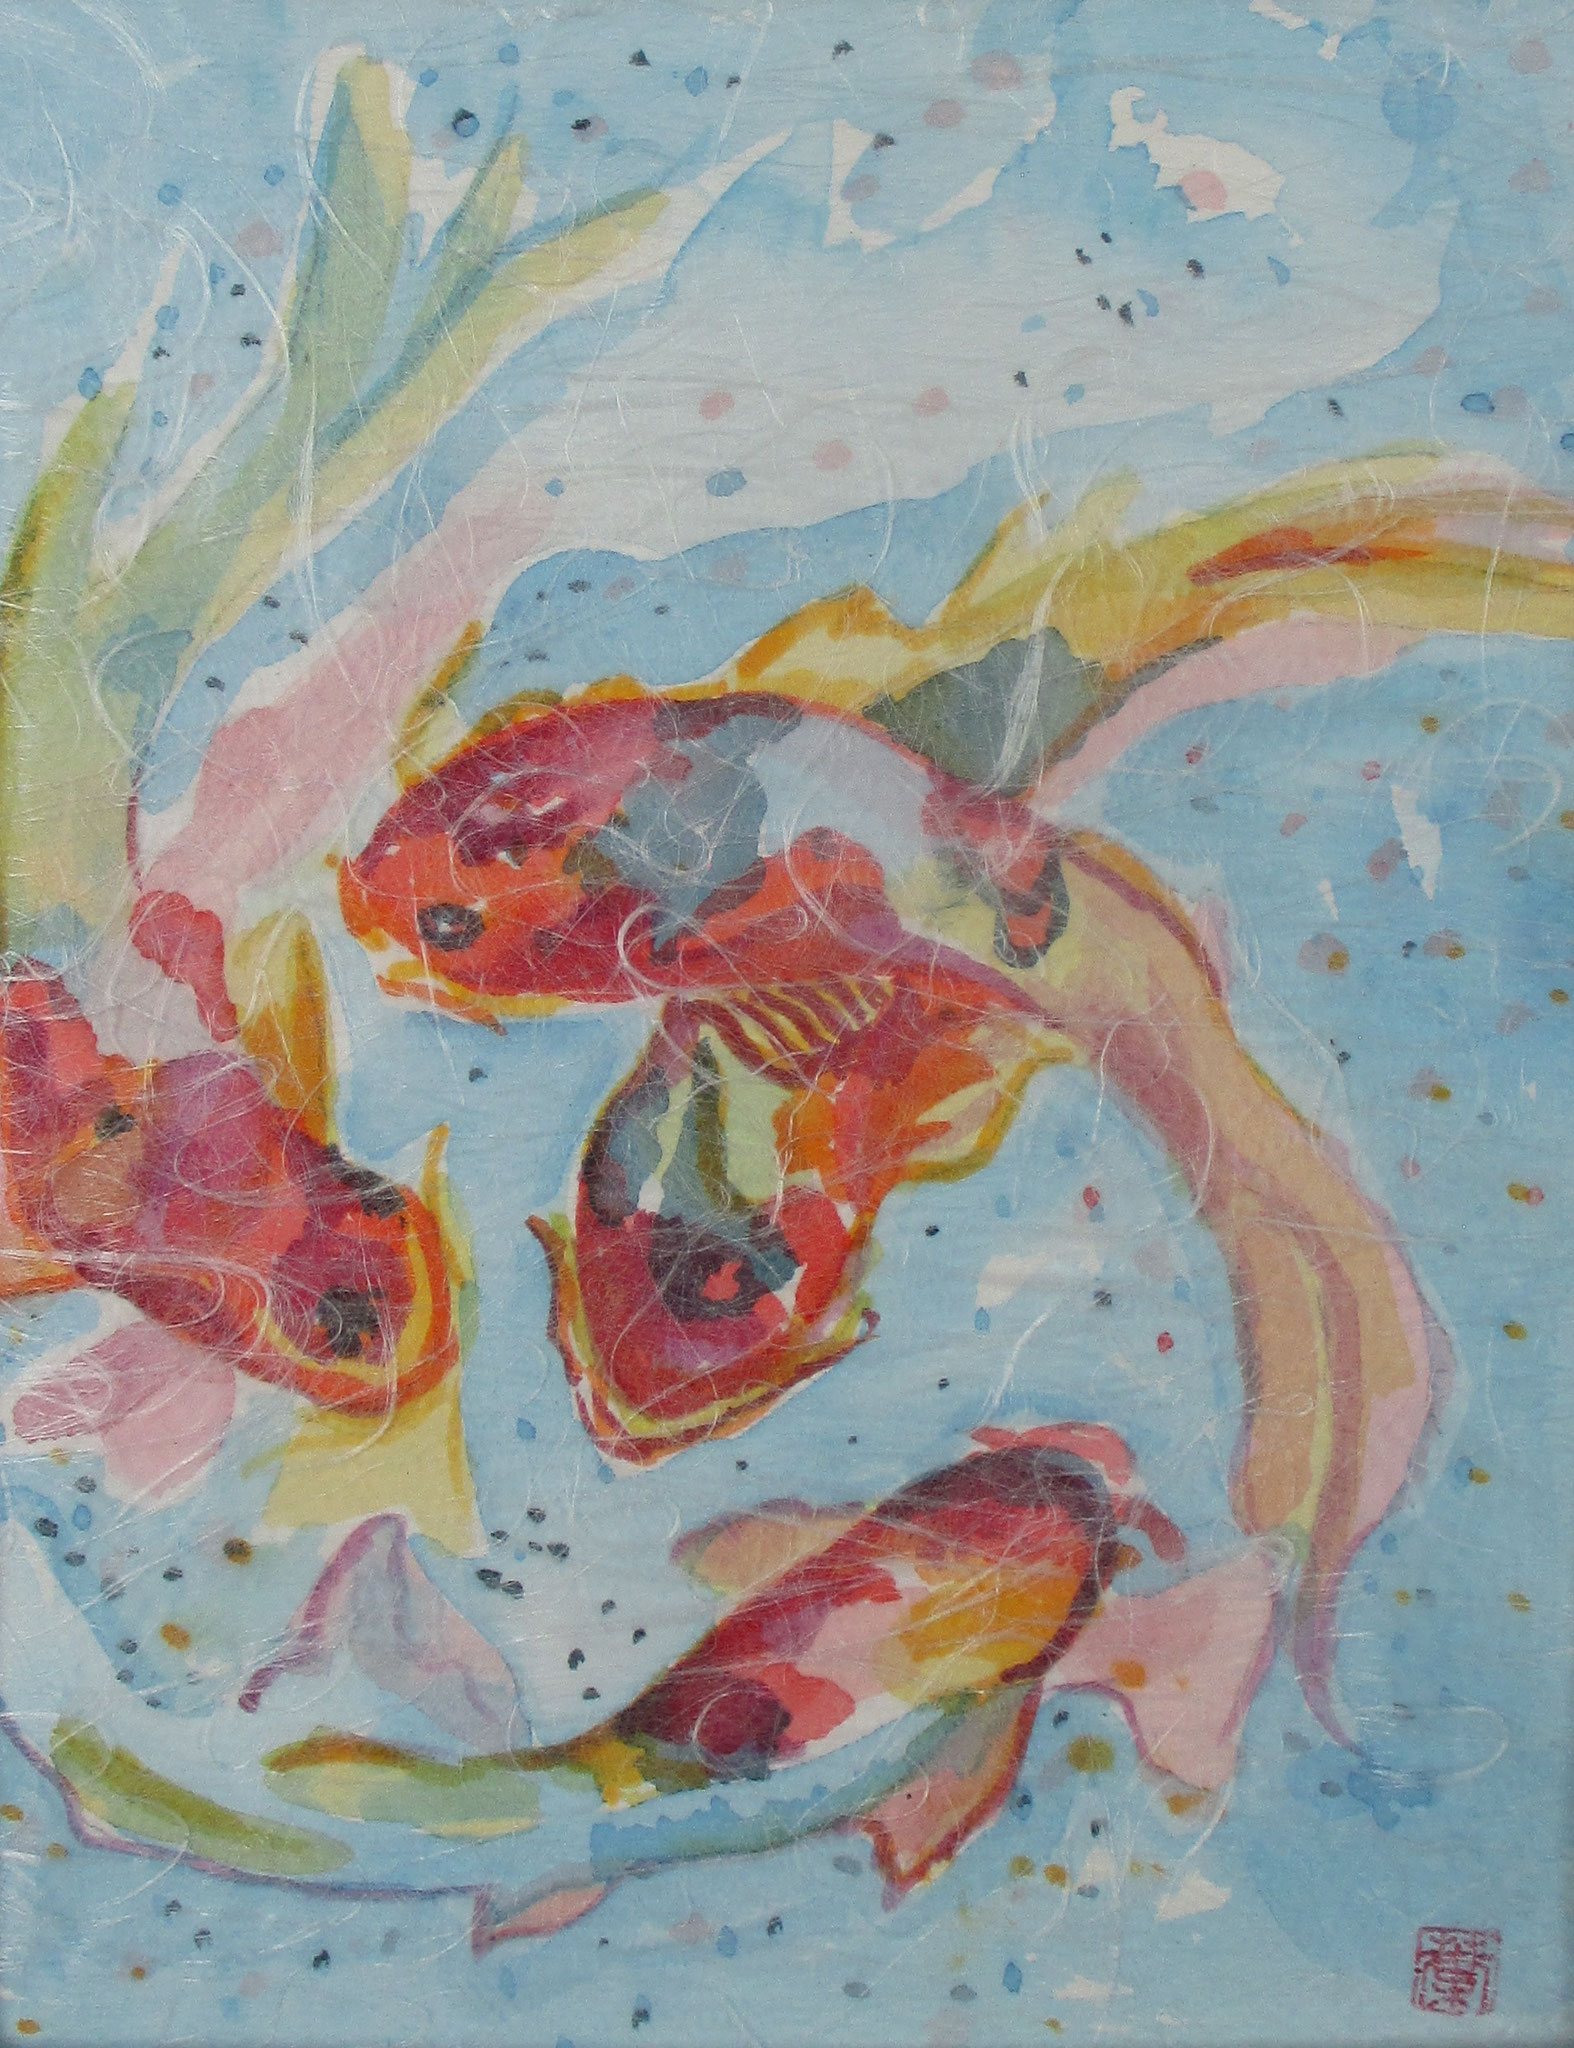 Koi, watercolor, Washi paper overlay, 11 x 14, matted